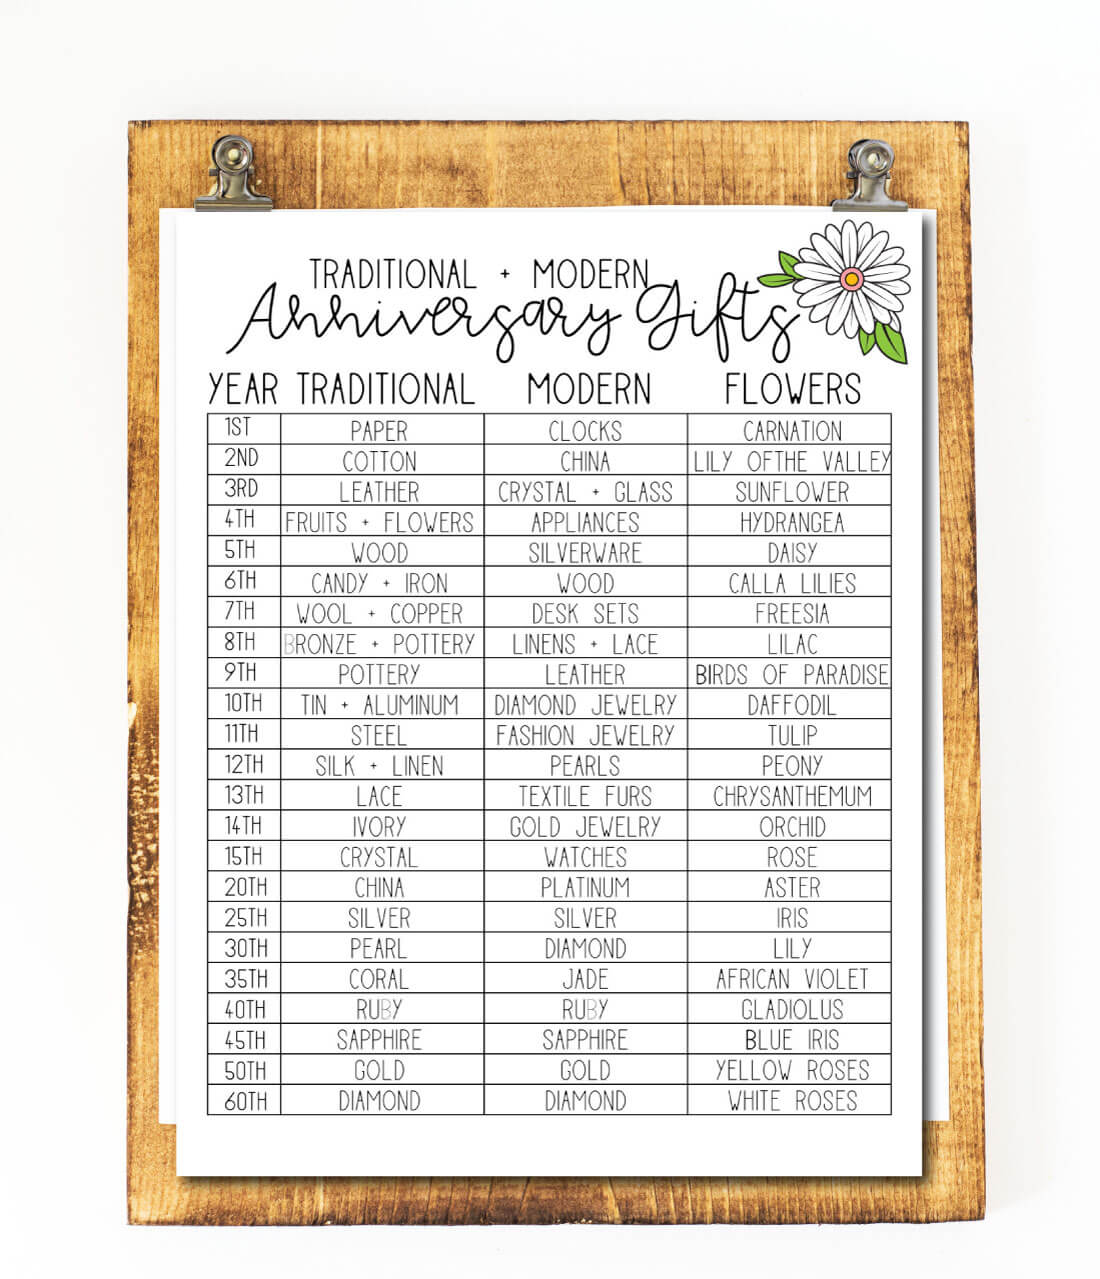 Gifts For Wedding Anniversaries: Anniversary Gifts By Year